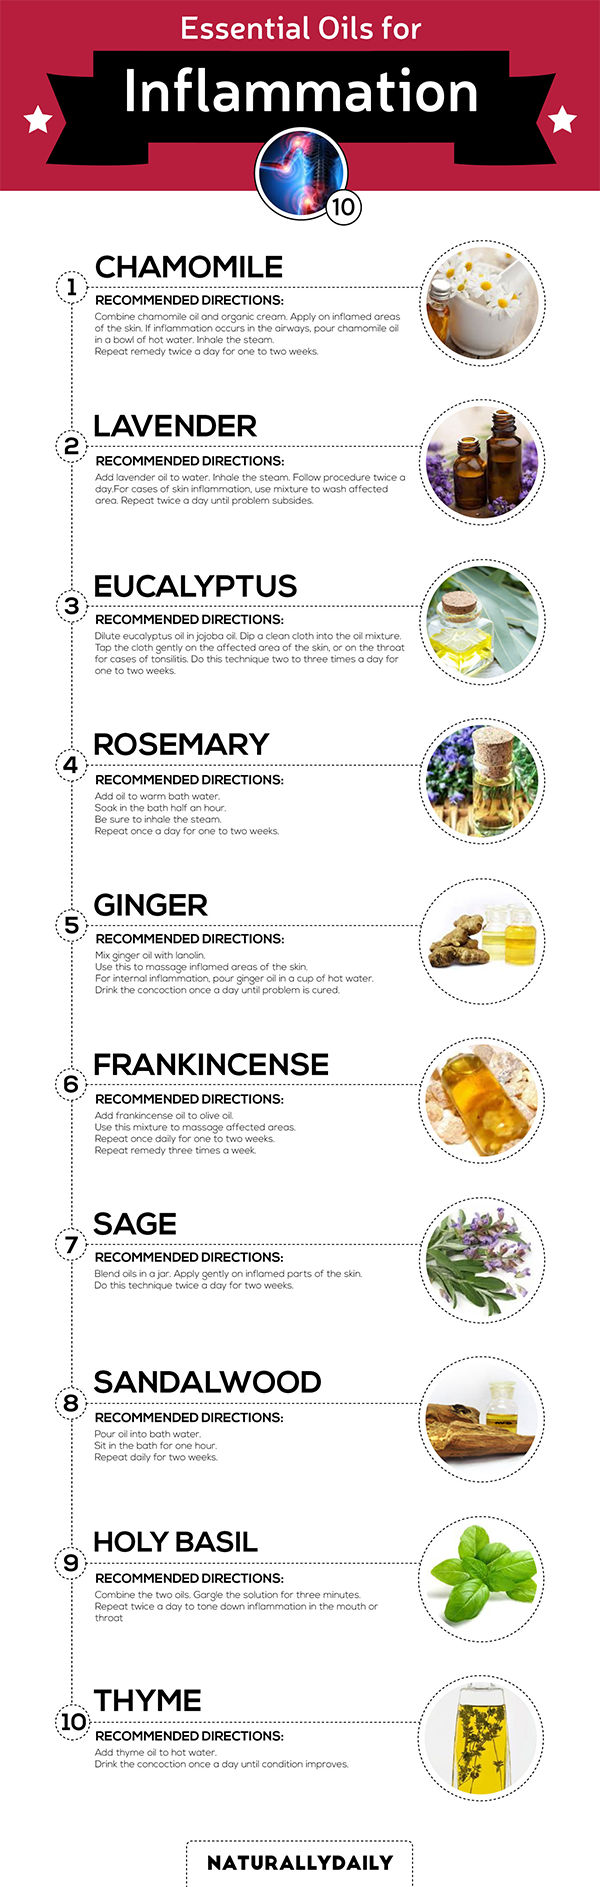 Essential Oils For Inflammation is an infographic frm https://naturallydaily.com/essential-oils-for-inflammation/